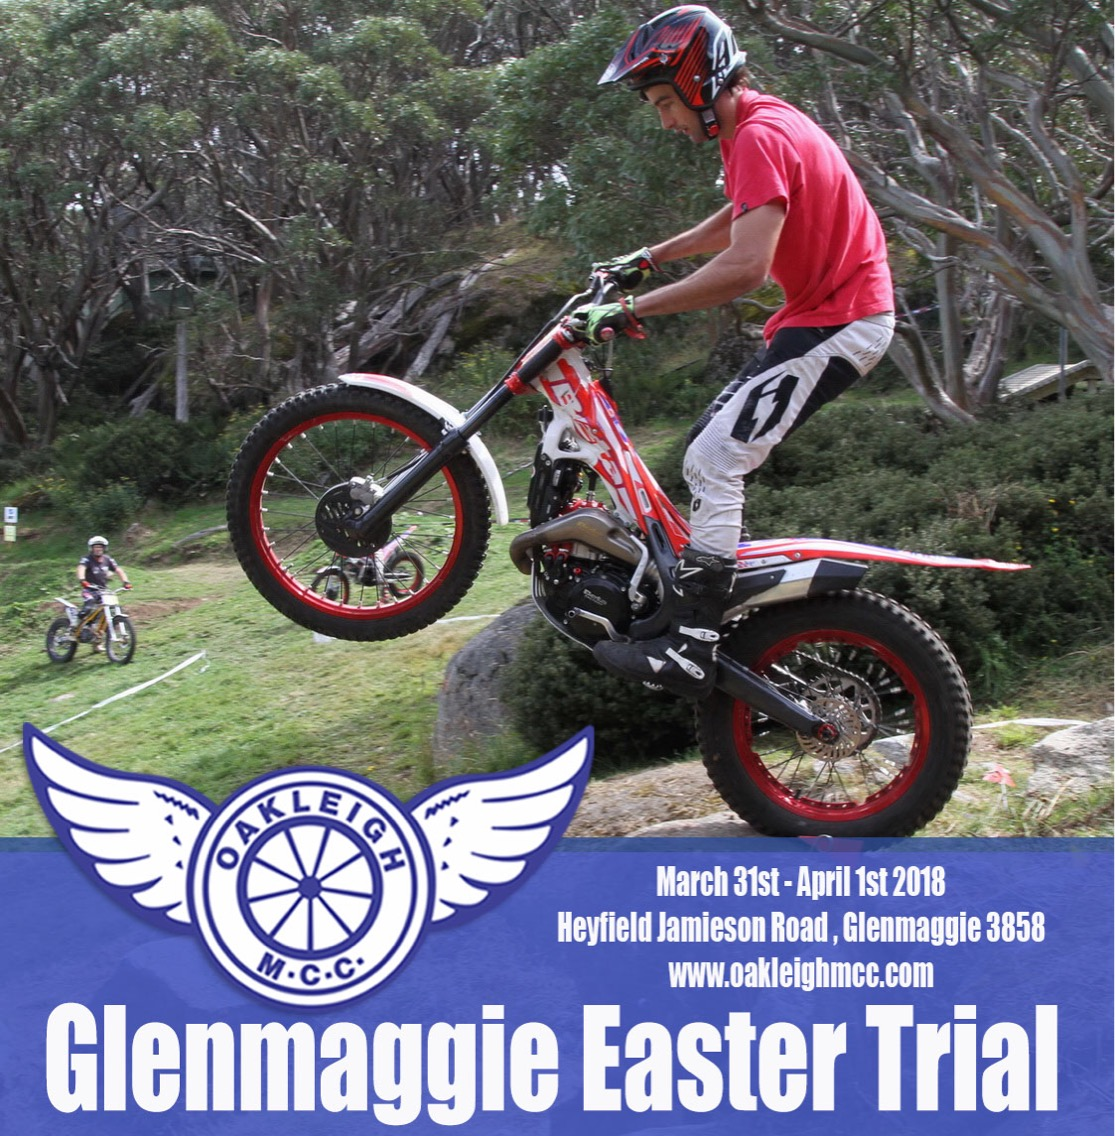 Glenmaggie Easter Trial - ONLINE ENTRY CLOSING SOON